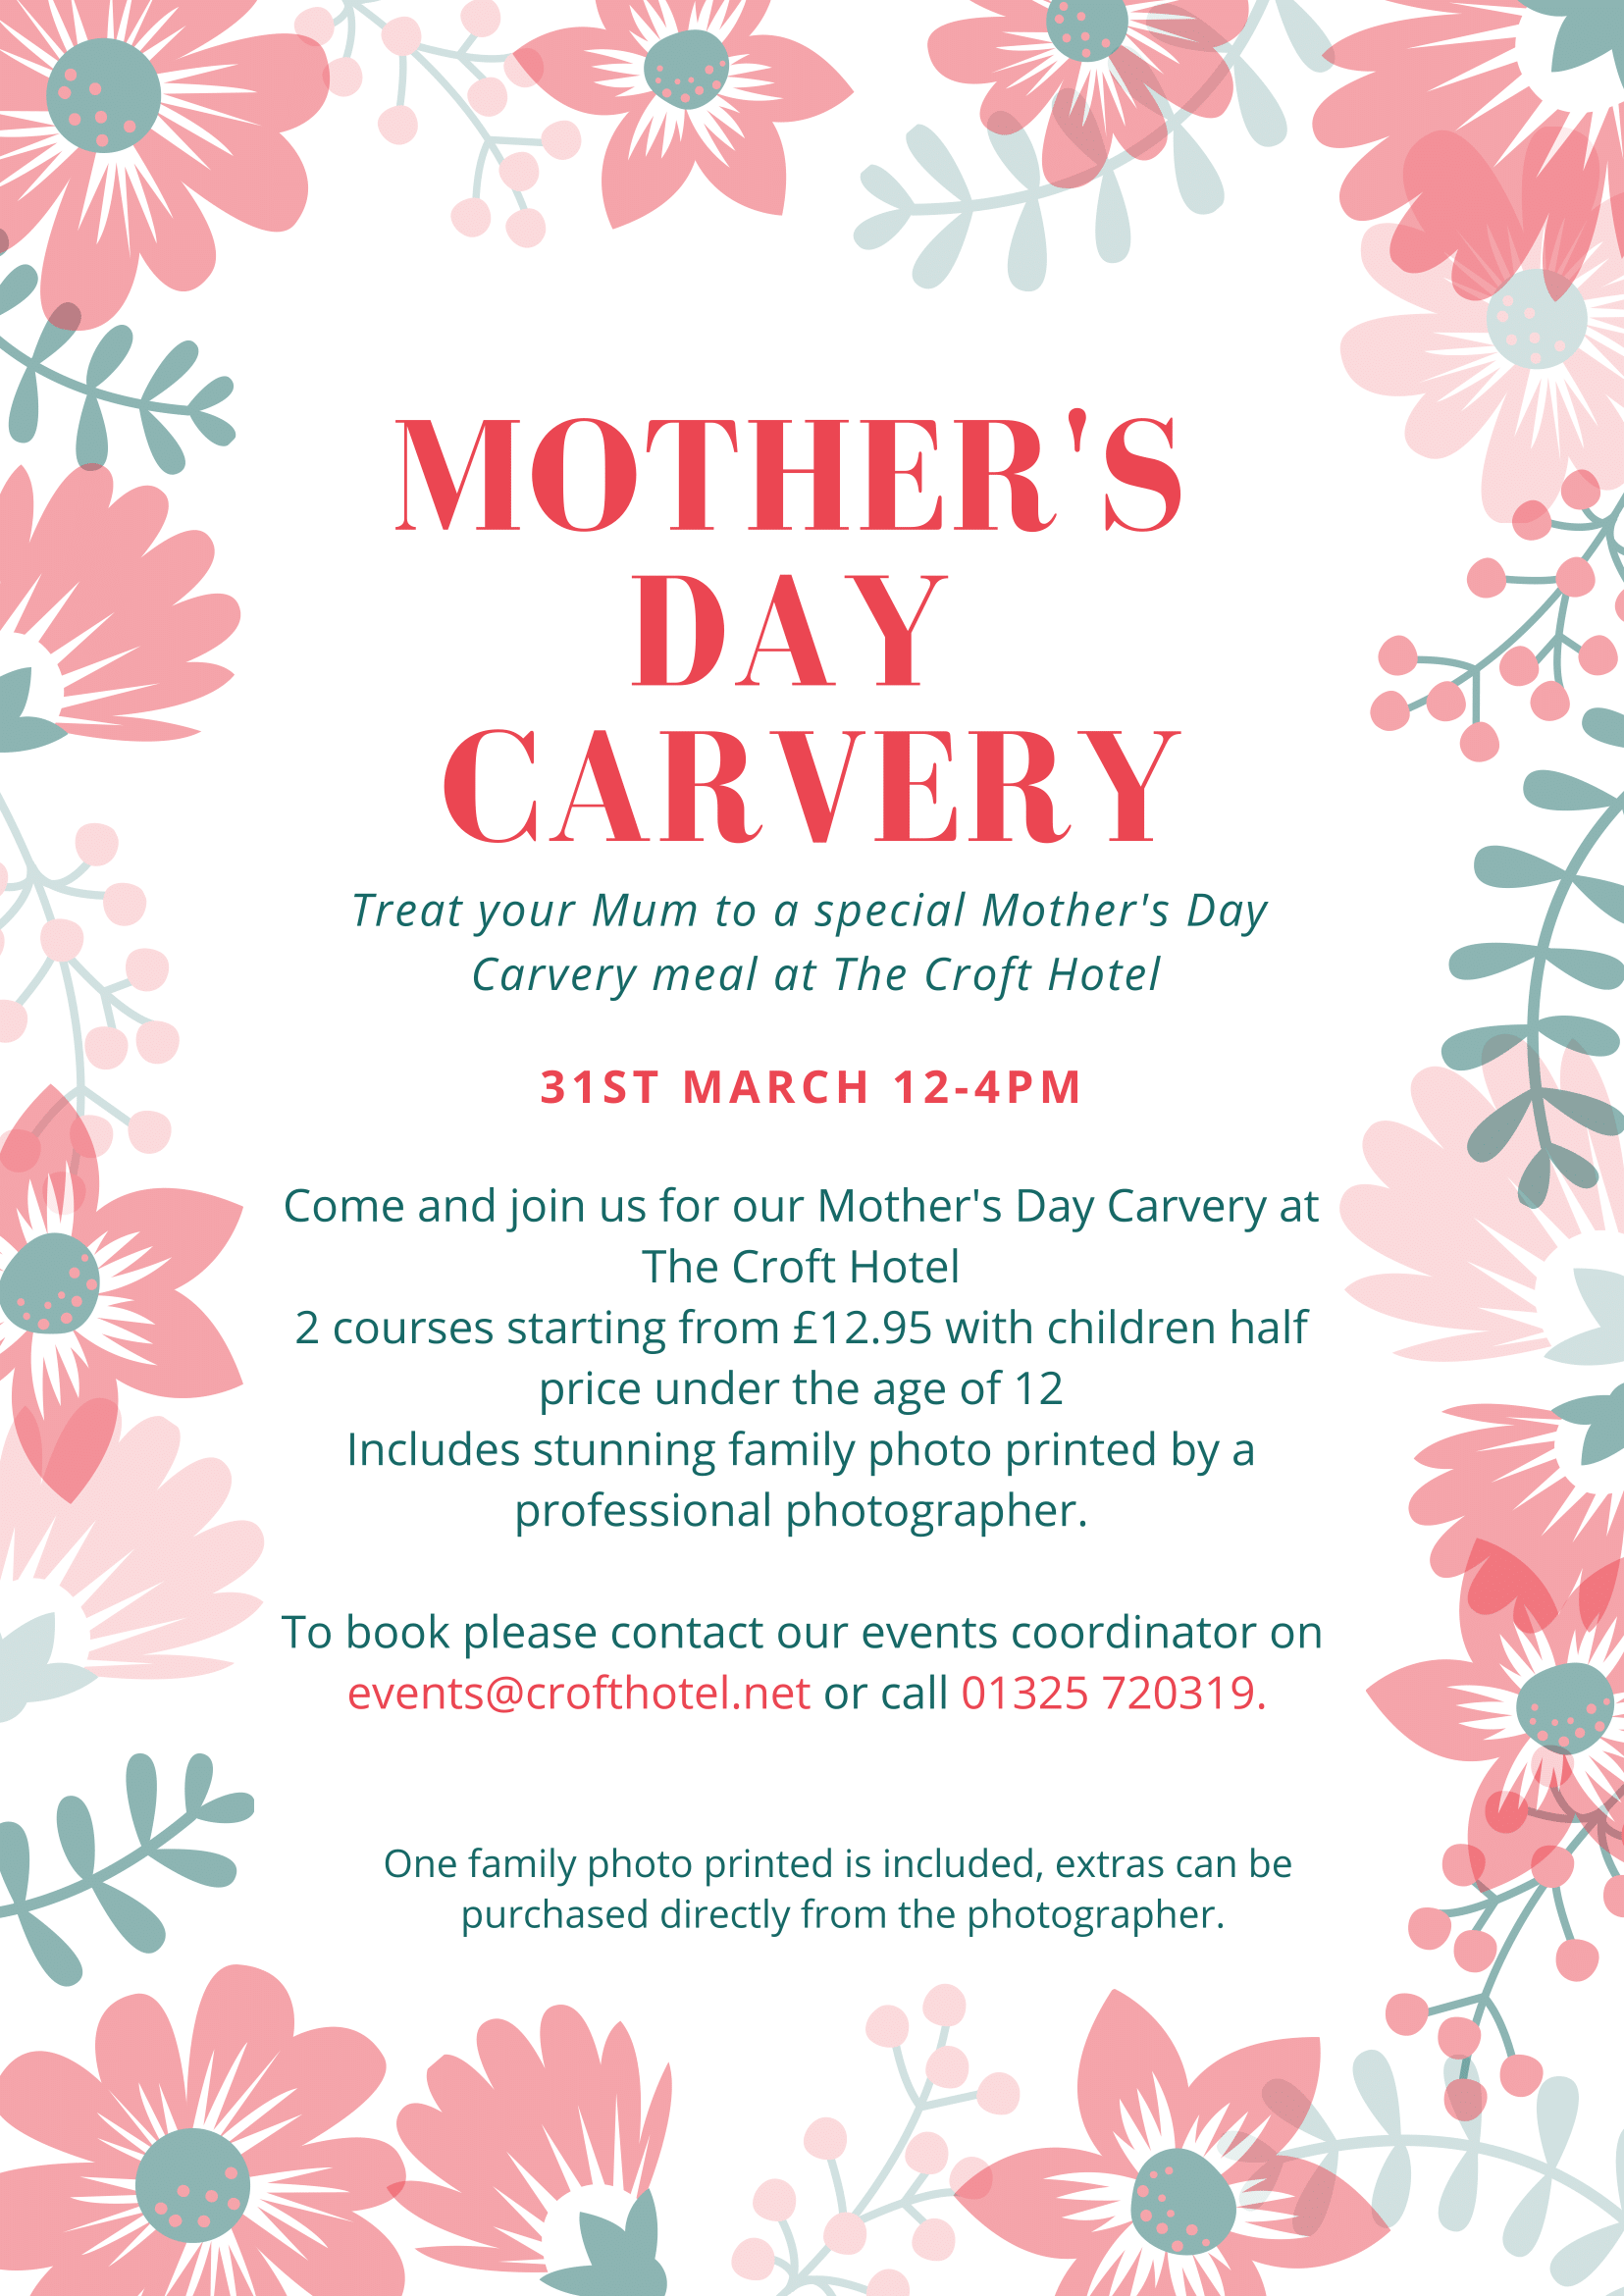 The Croft Hotel - Carvery for Mother's Day special offer